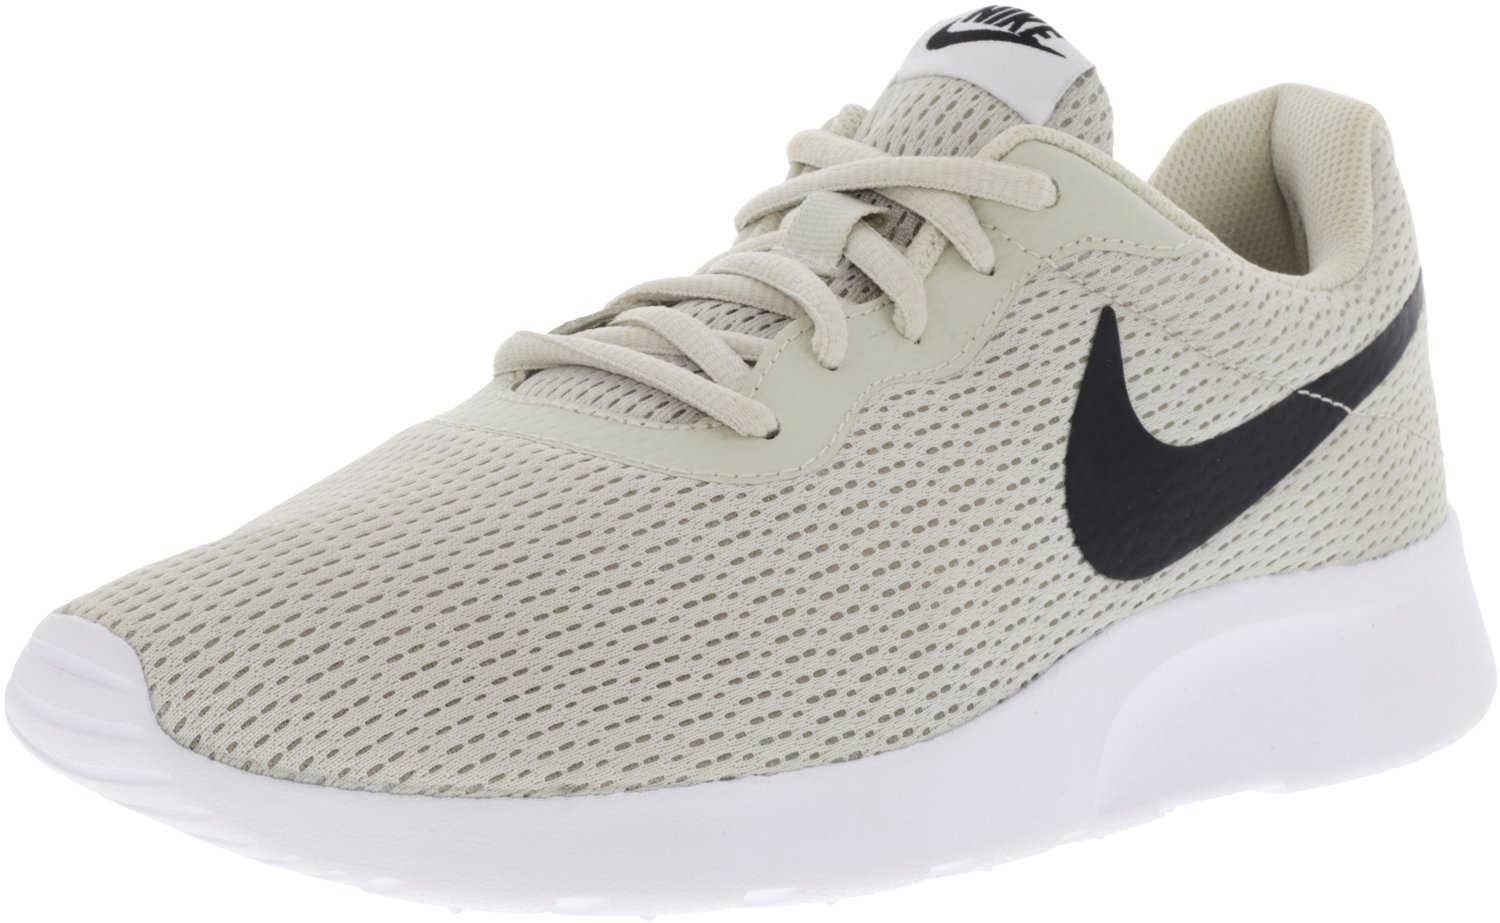 NIKE Men's Tanjun Sneakers, Breathable Textile Uppers and Comfortable Lightweight Cushioning B000G468QU 10.5 D(M) US|Light Bone/Black-white